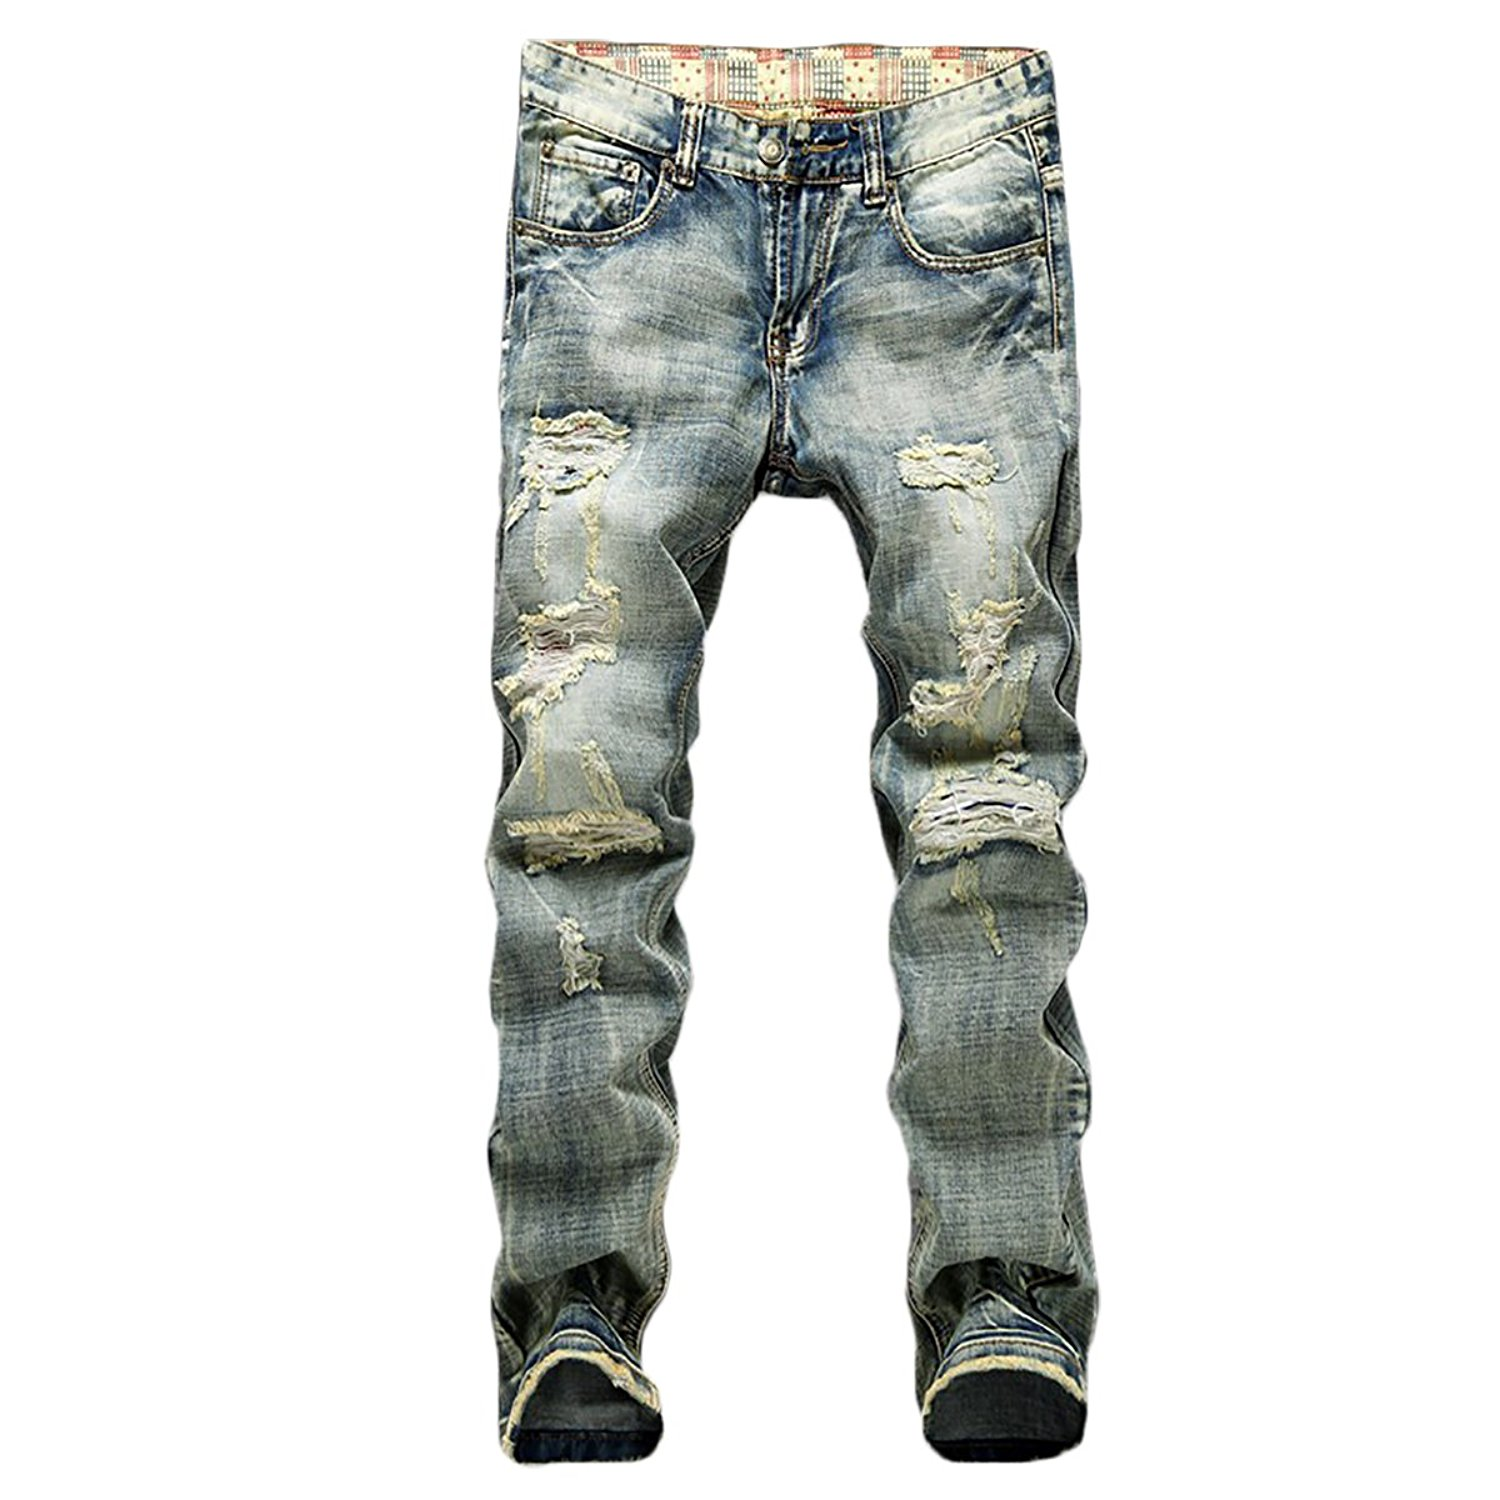 Ameyda Mens Vintage Ripped Straight Fit Denim Jeans Pants with Broken Holes